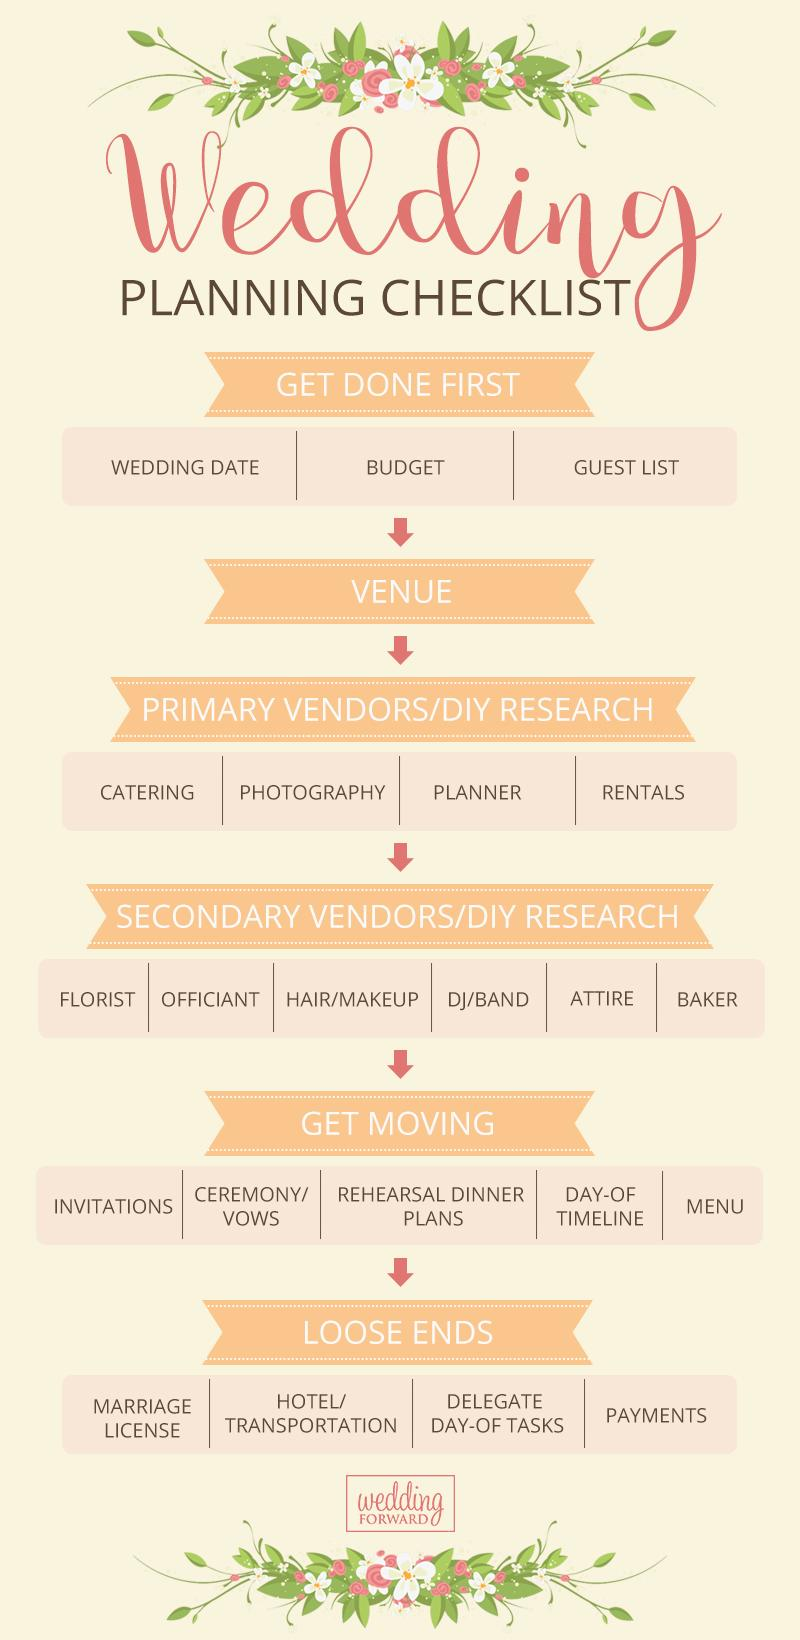 ultimate wedding checklist  u2013 free wedding planning checklist